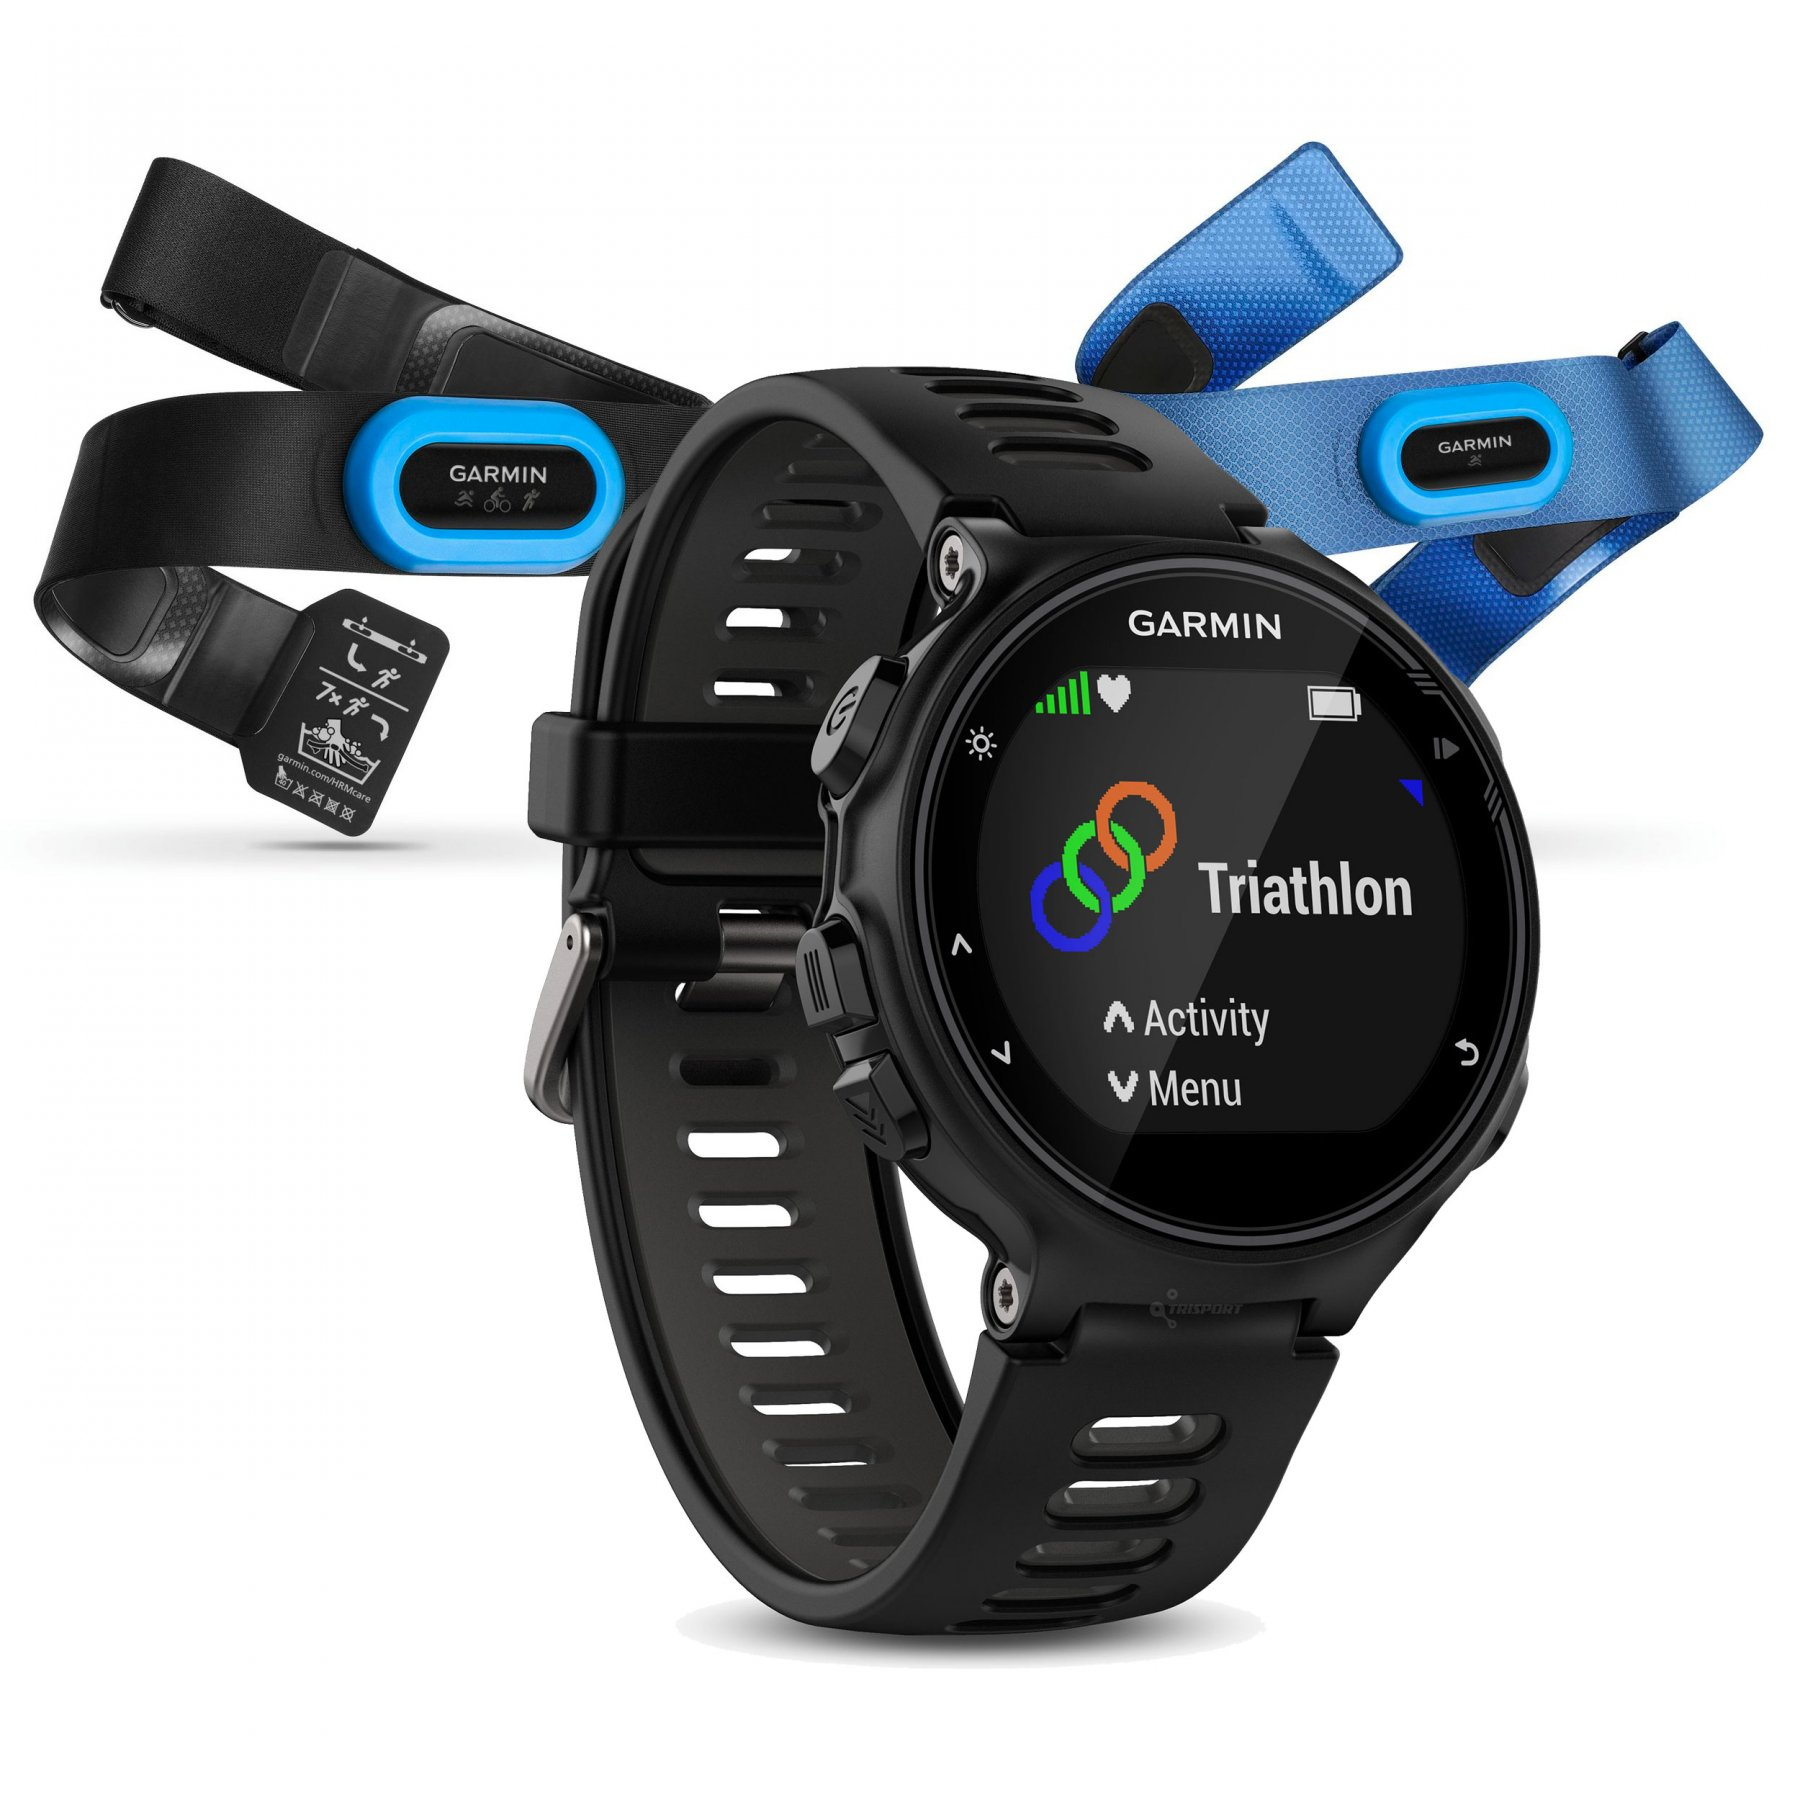 garmin forerunner 735xt black grey tri bundle. Black Bedroom Furniture Sets. Home Design Ideas